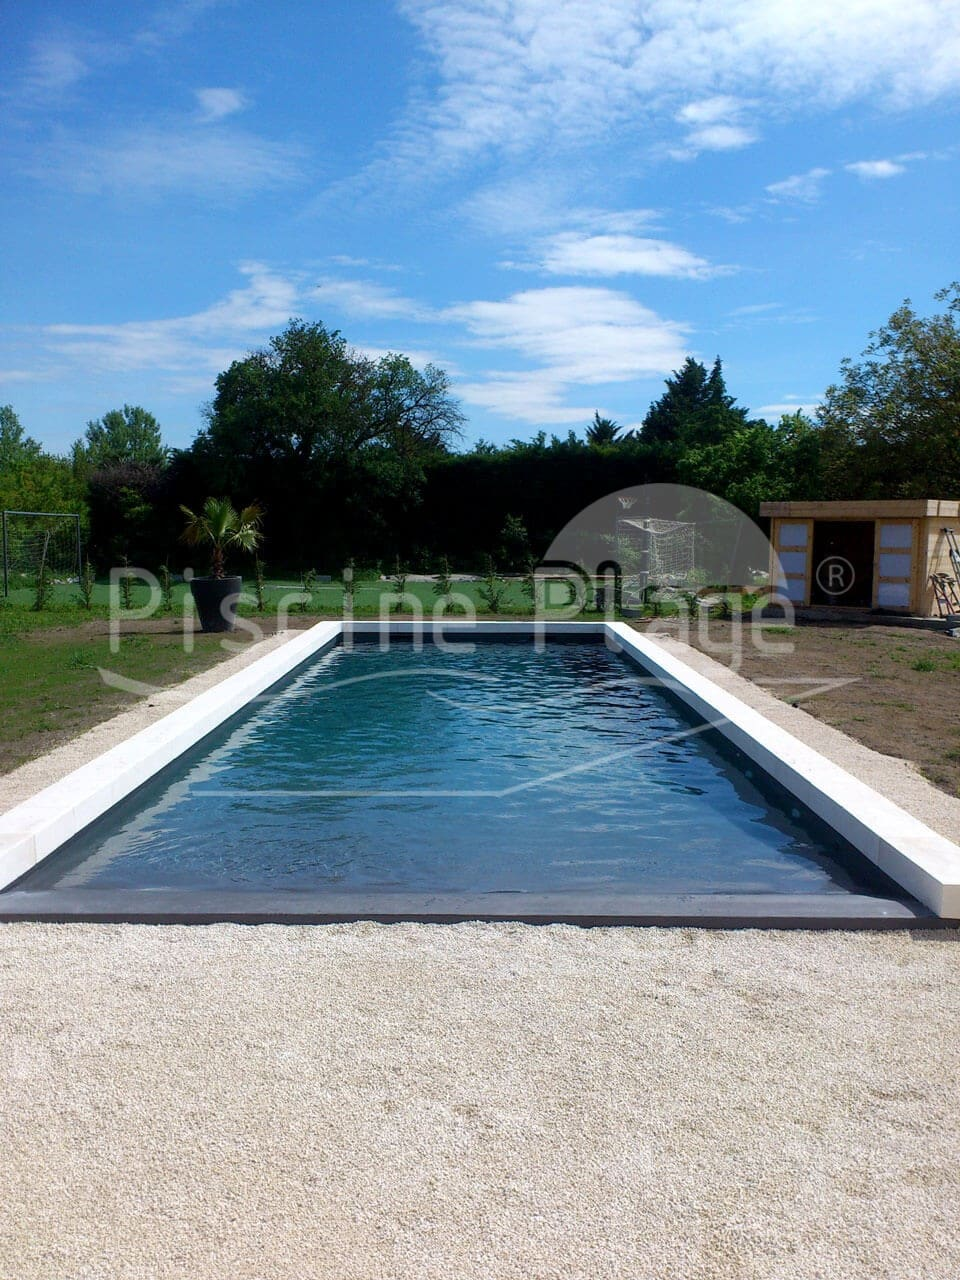 piscine avec plage immerg e valence fr jus montpellier piscine plage. Black Bedroom Furniture Sets. Home Design Ideas